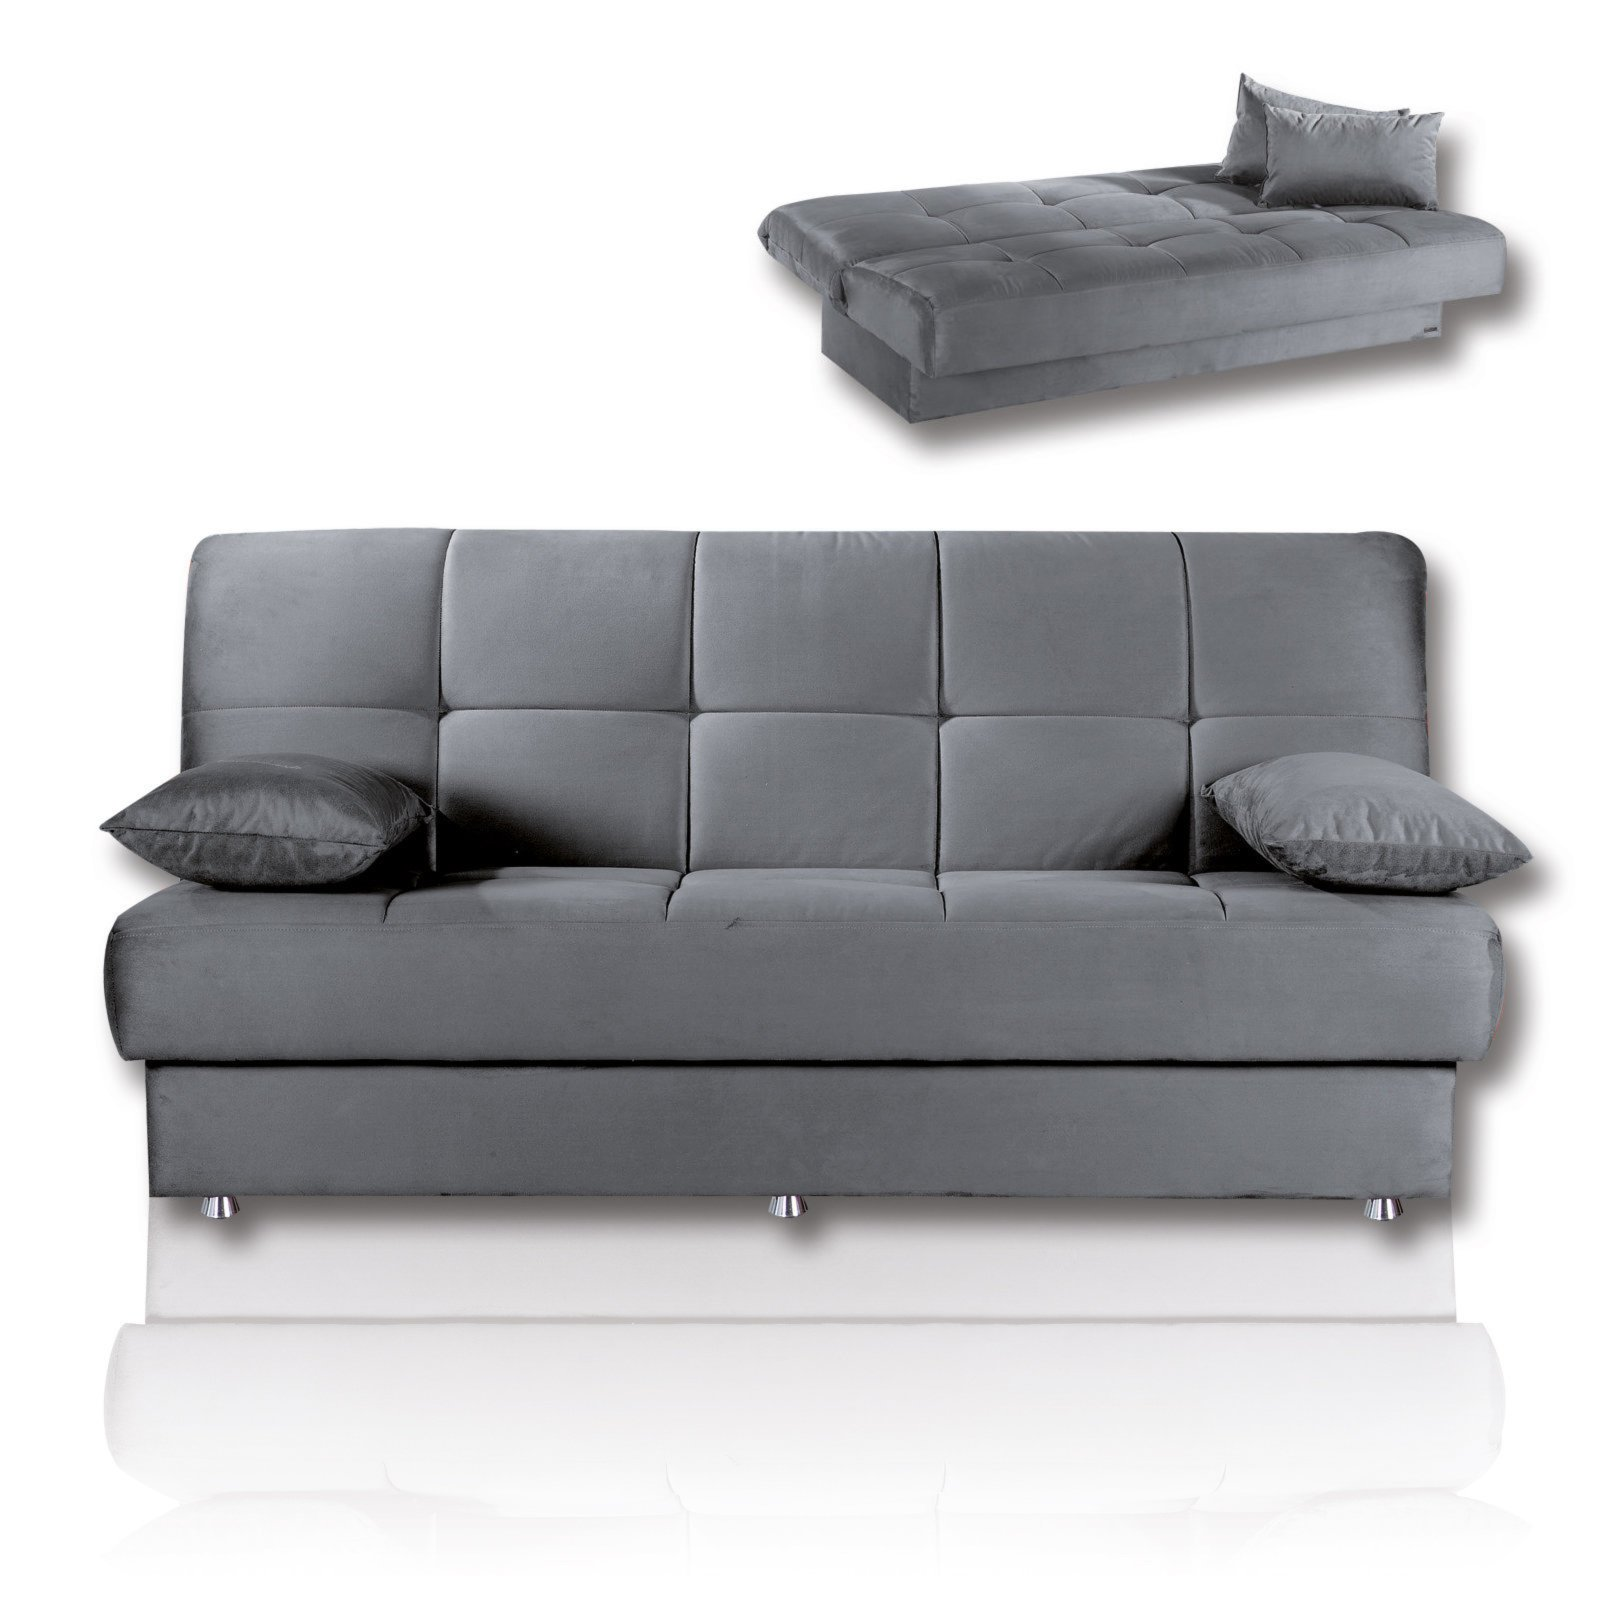 roller schlafsofa grau microfaser mit staukasten ebay. Black Bedroom Furniture Sets. Home Design Ideas